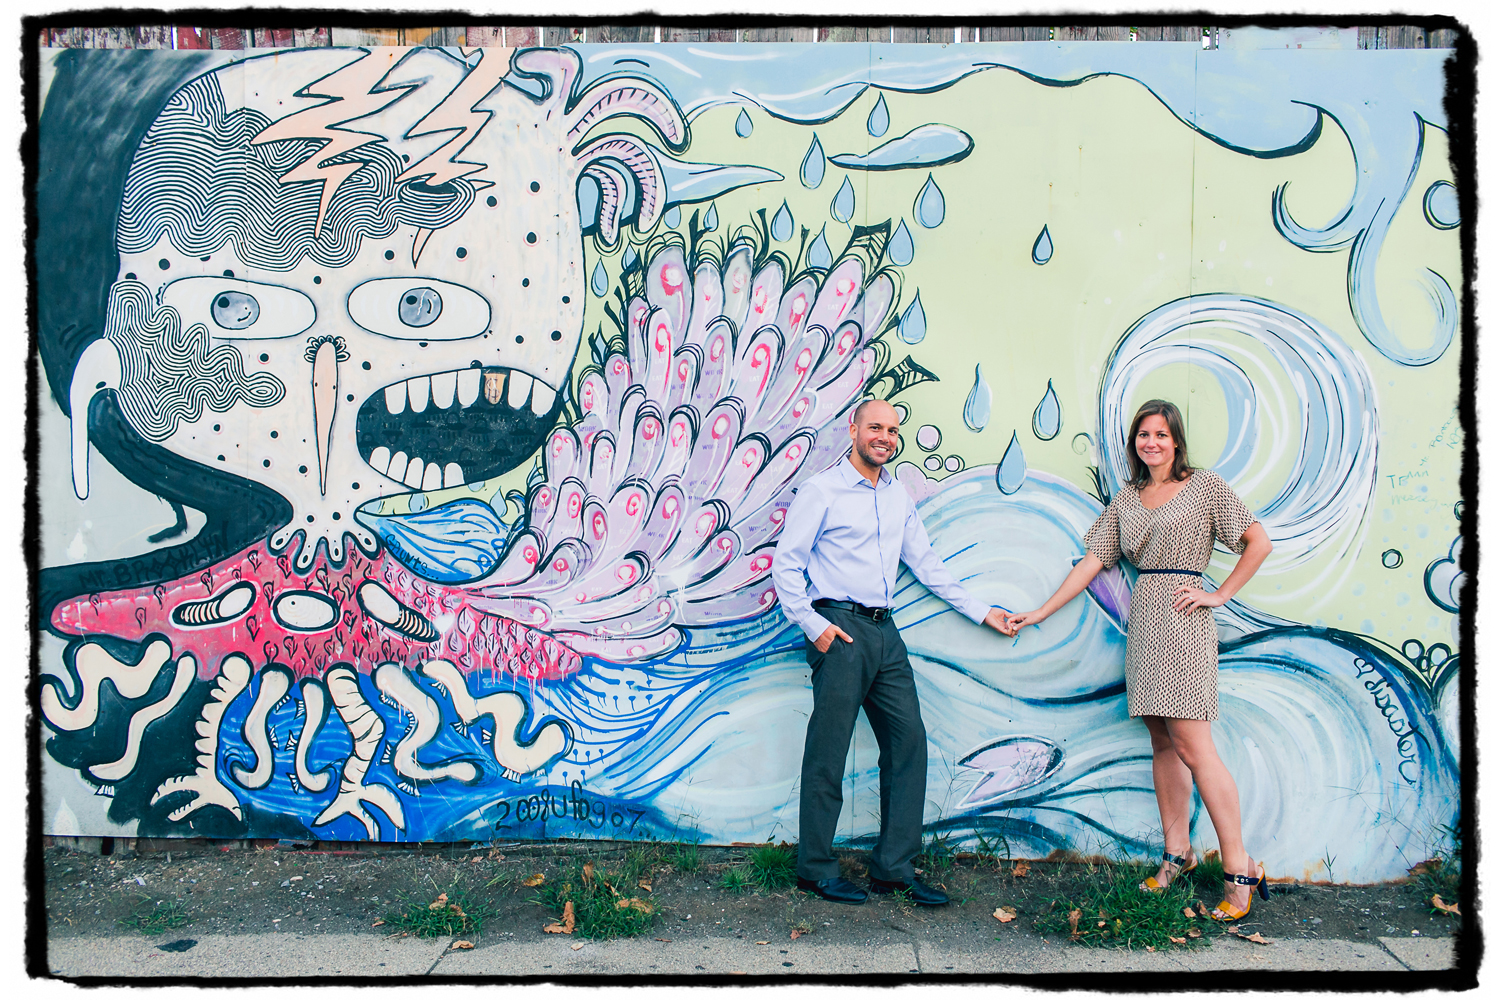 Engagement Portrait: Laura & Joel show off the street art in their neighborhood of Red Hook, Brooklyn.